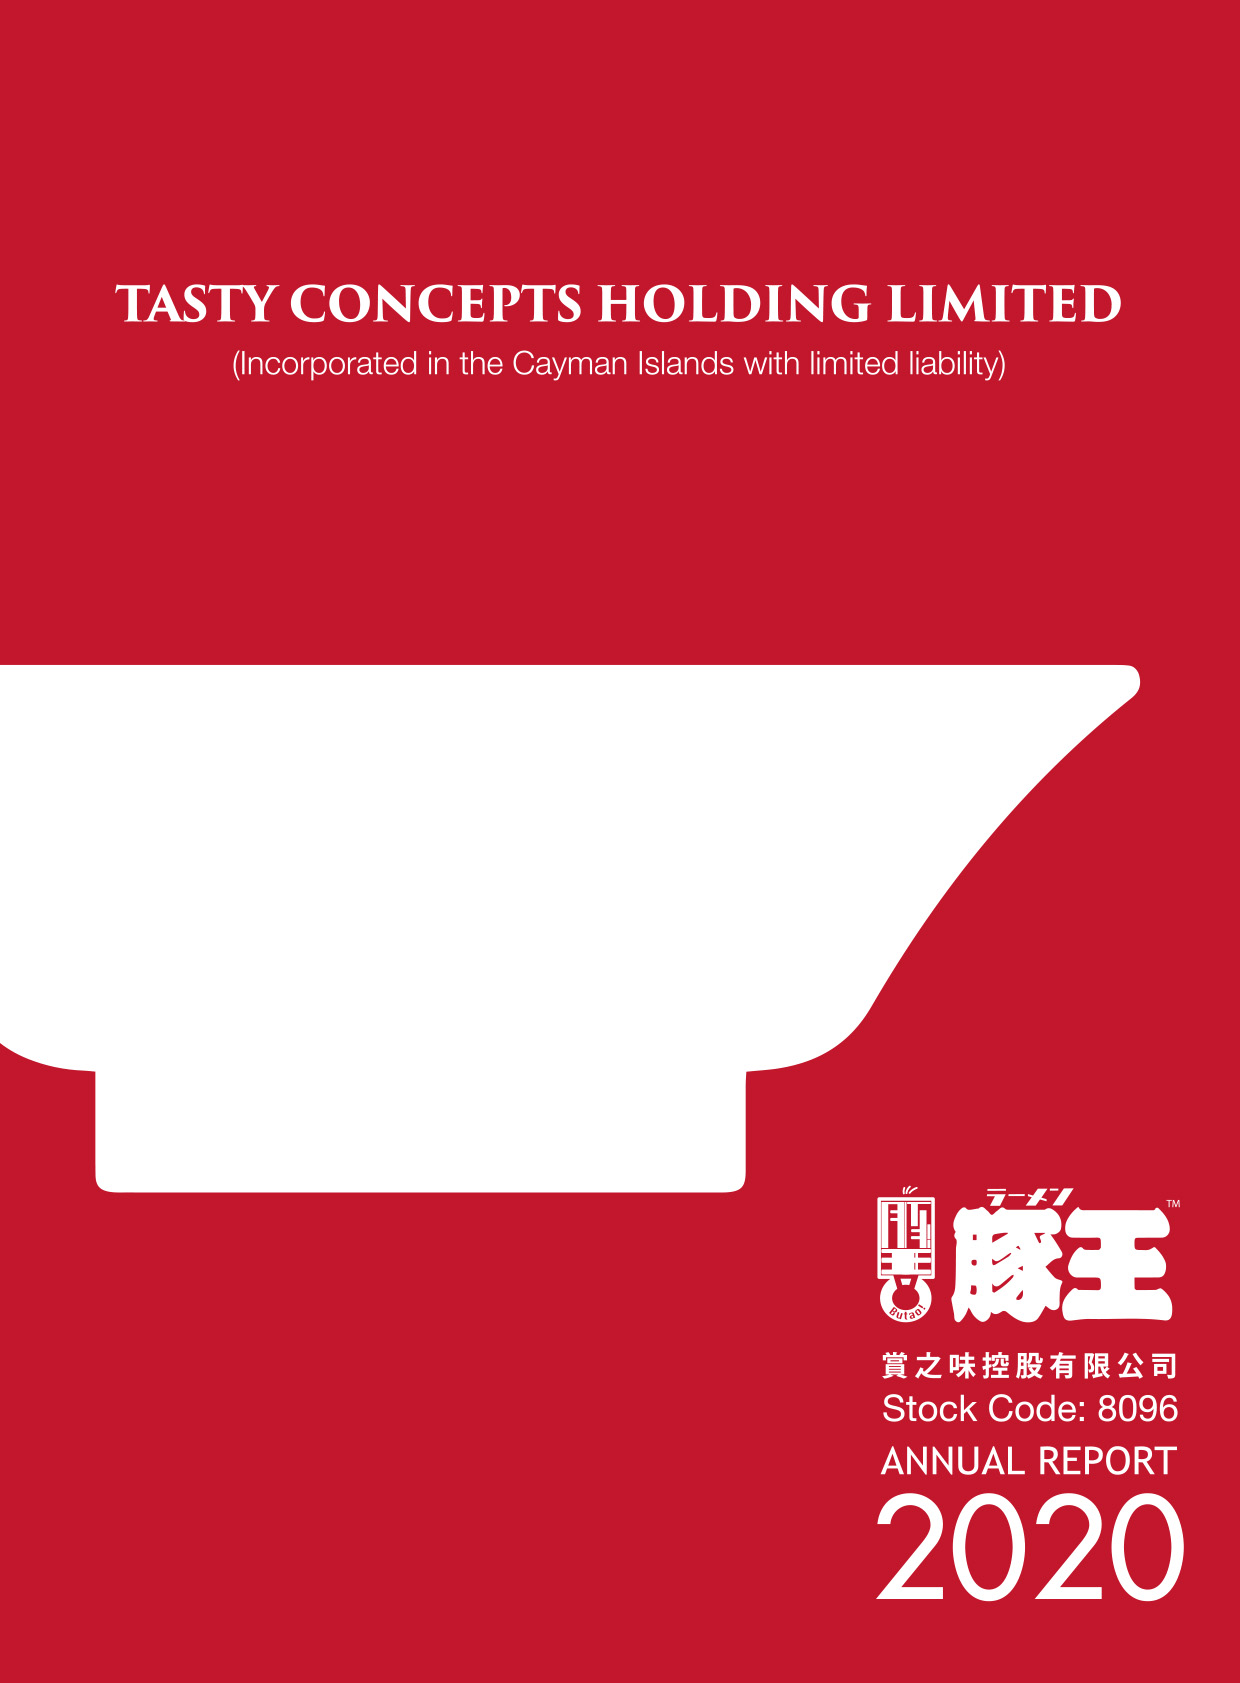 Tasty Concepts Holding Limited